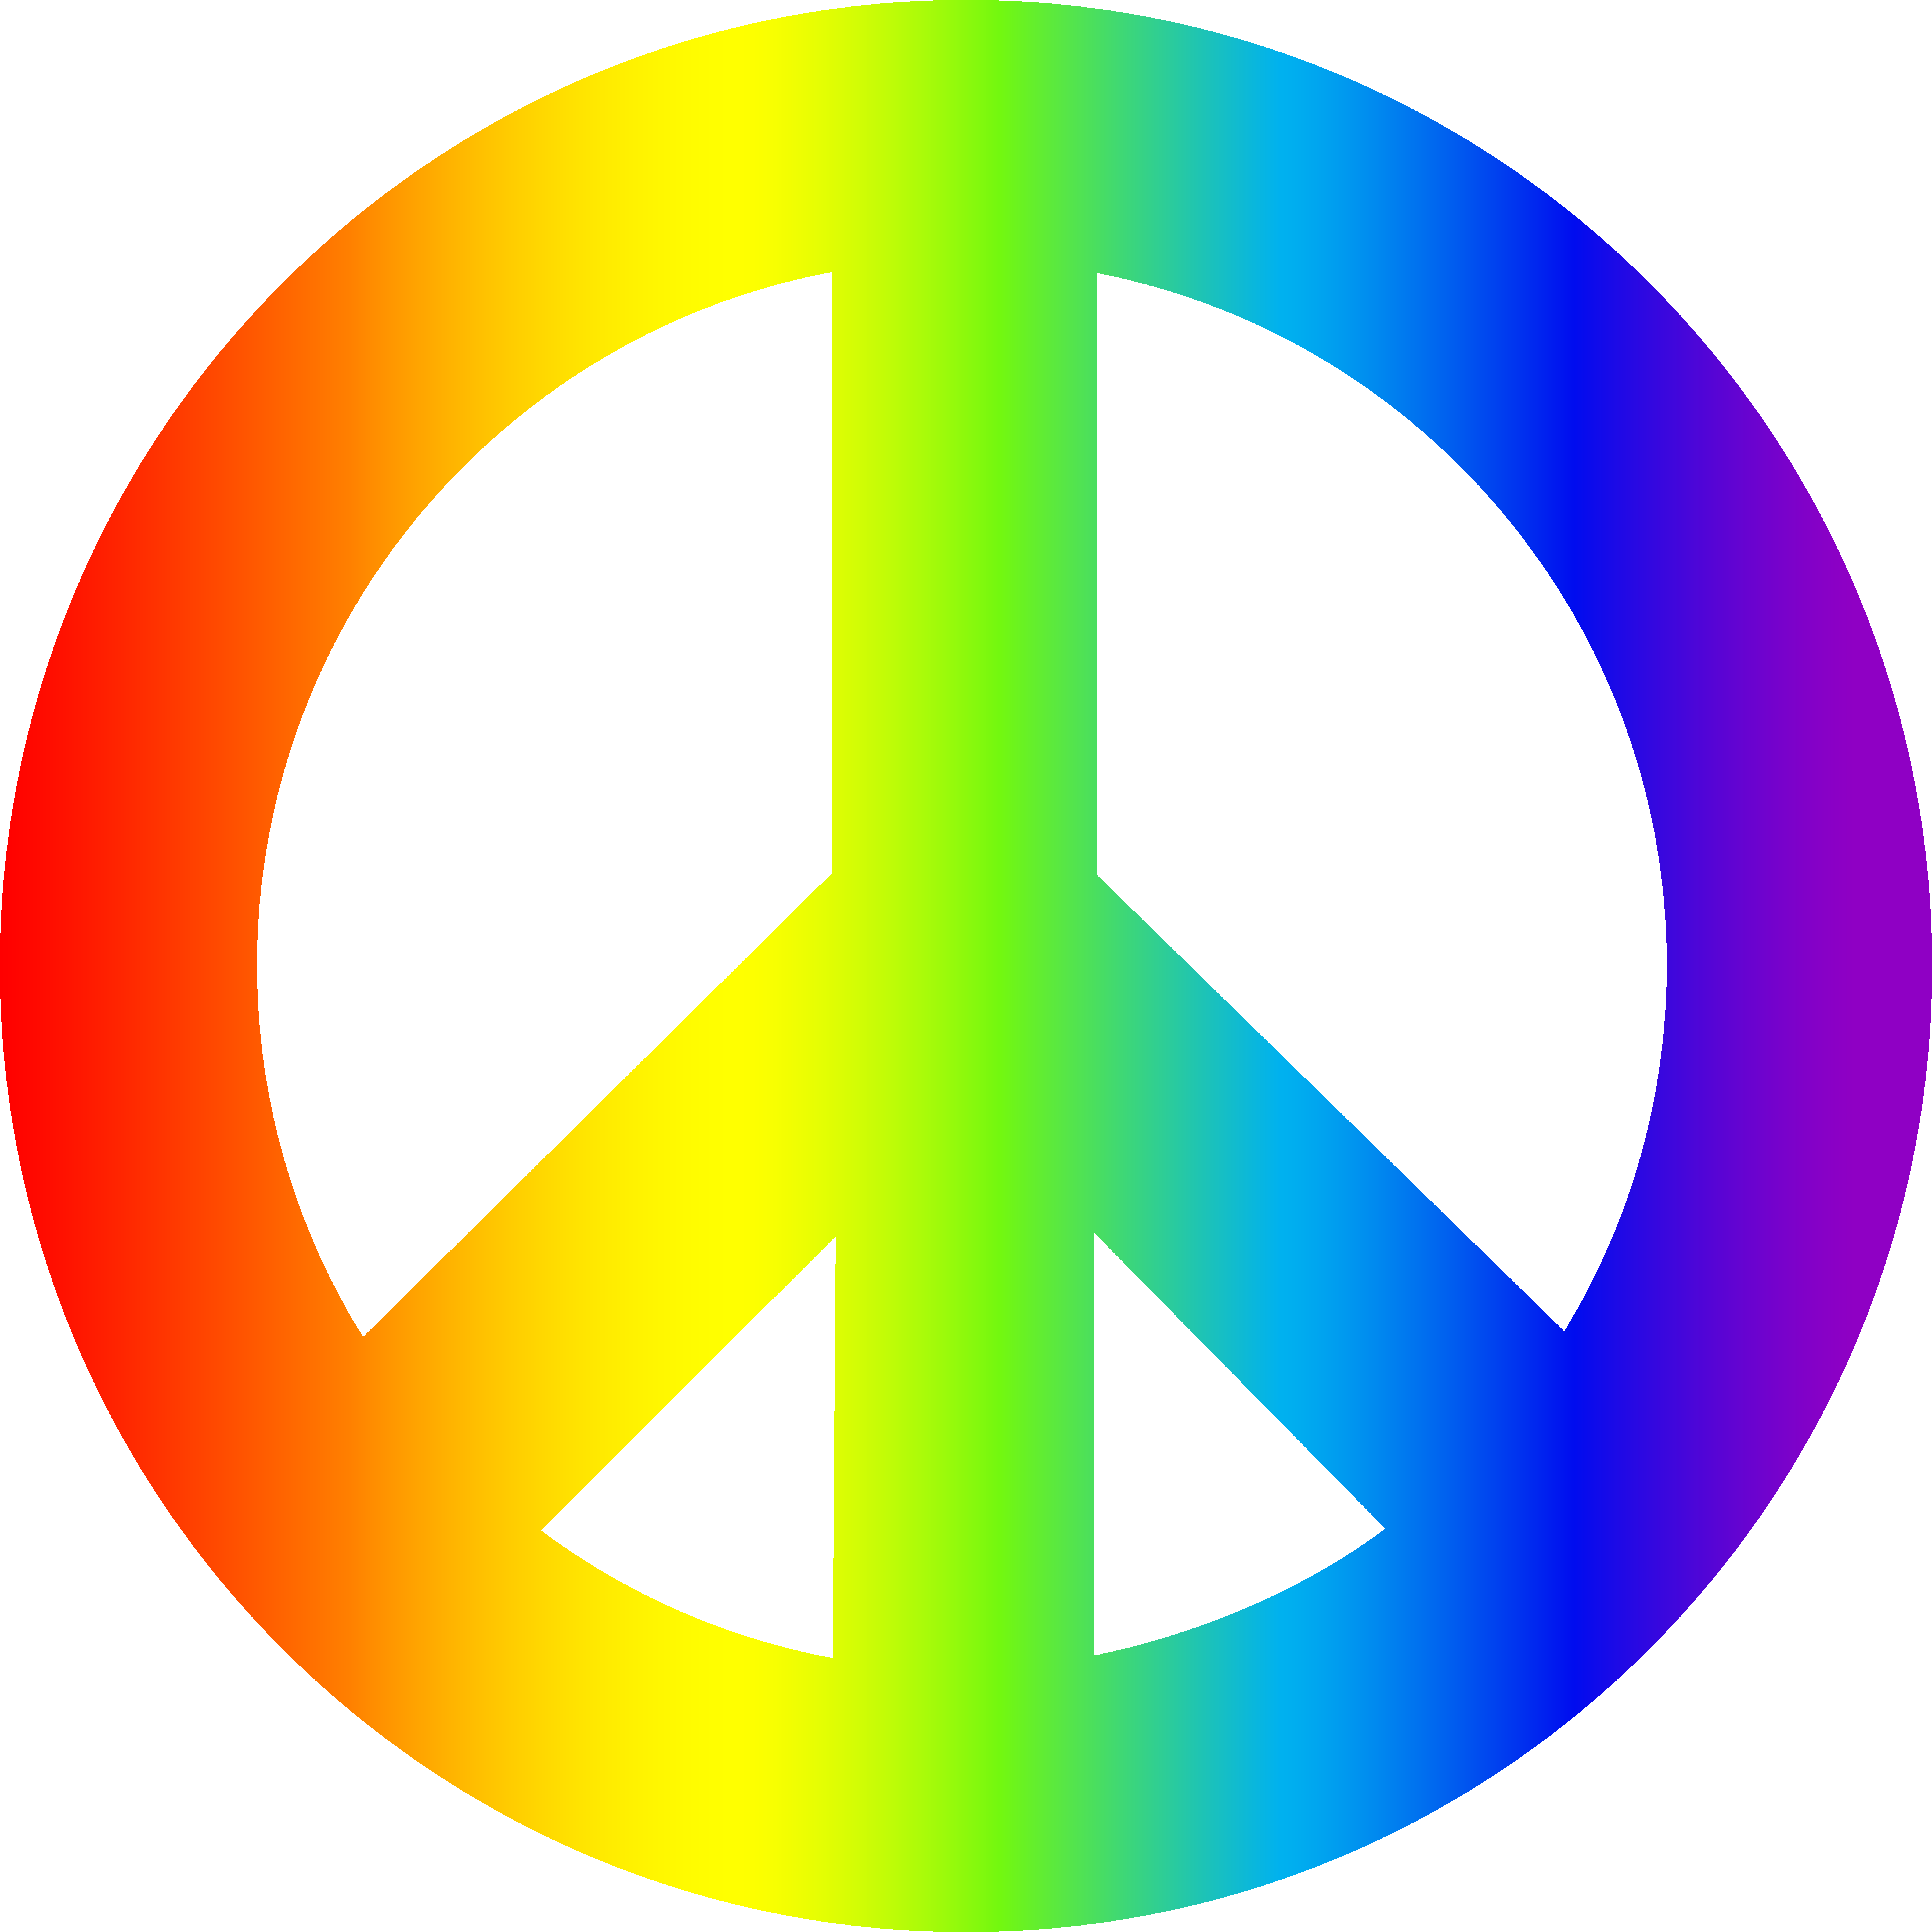 Hippie clipart first. Colorful peace sign rainbow